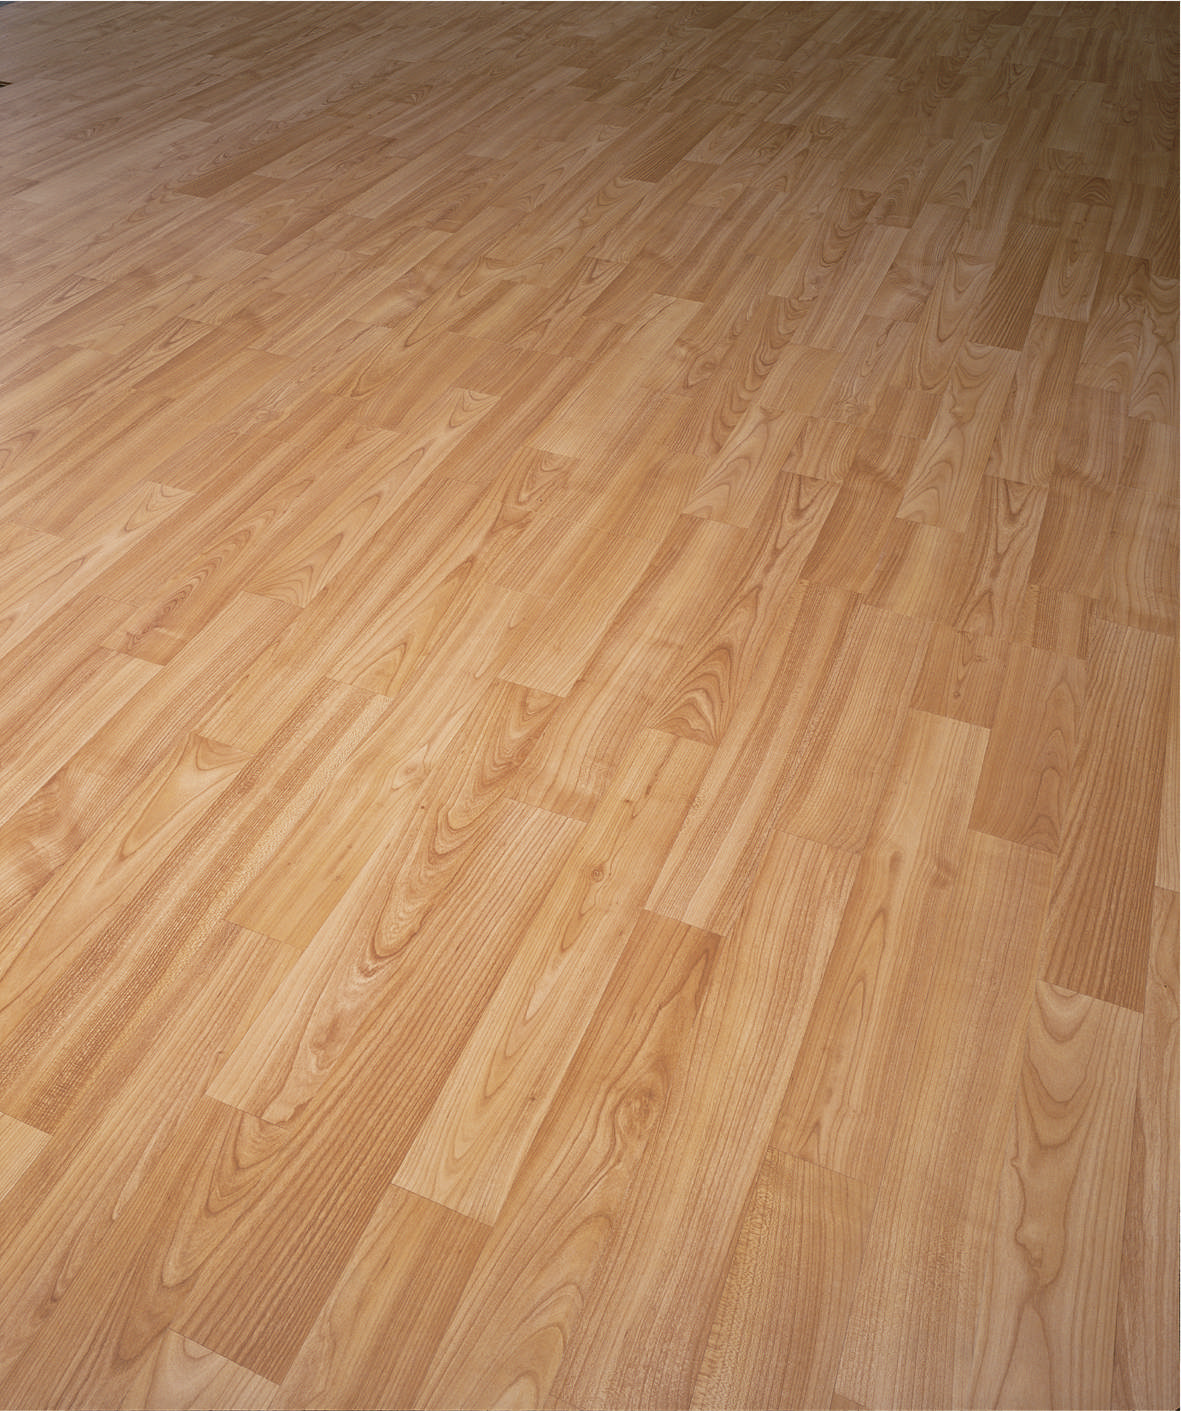 Kaindl laminate flooring majestic flooring for Laminate flooring company